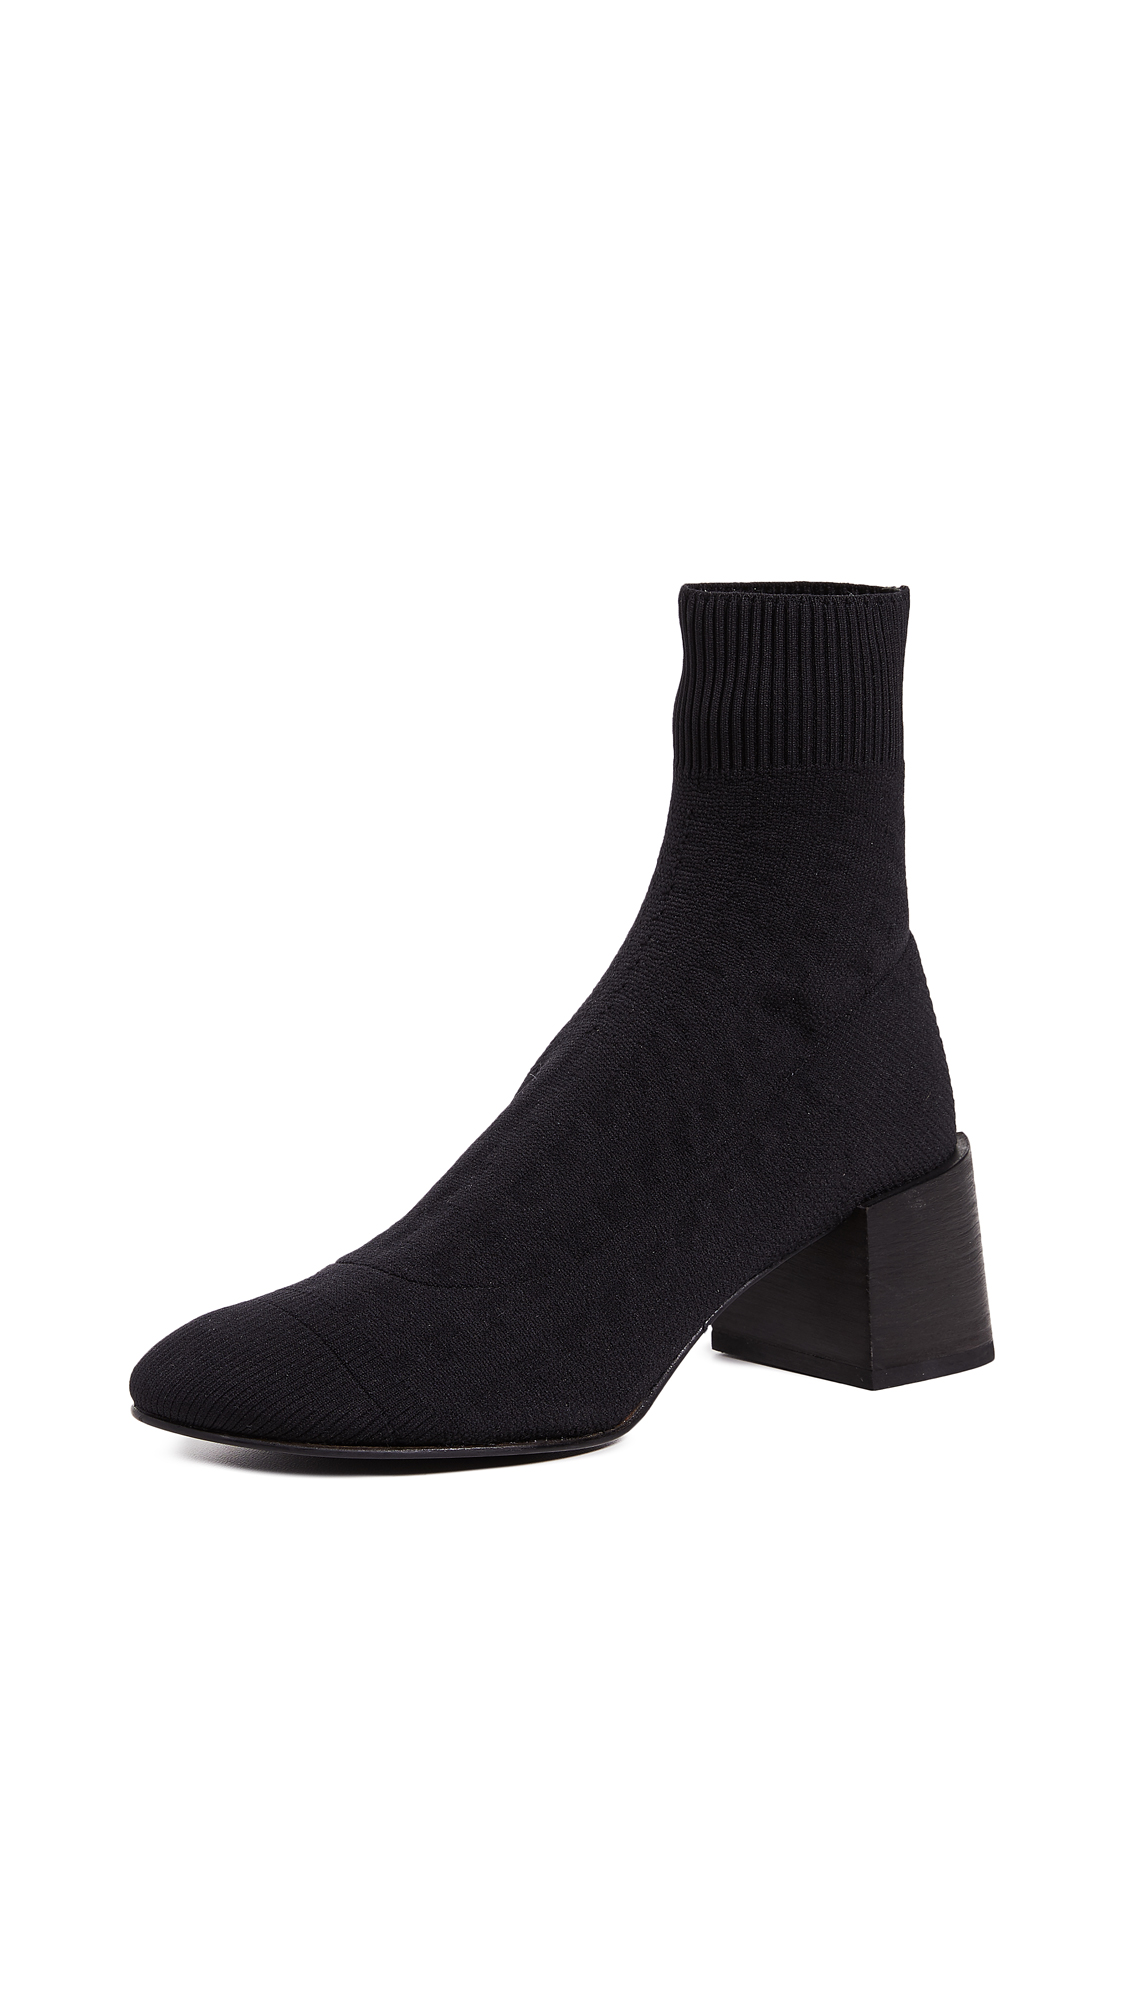 Acne Studios Knit Booties